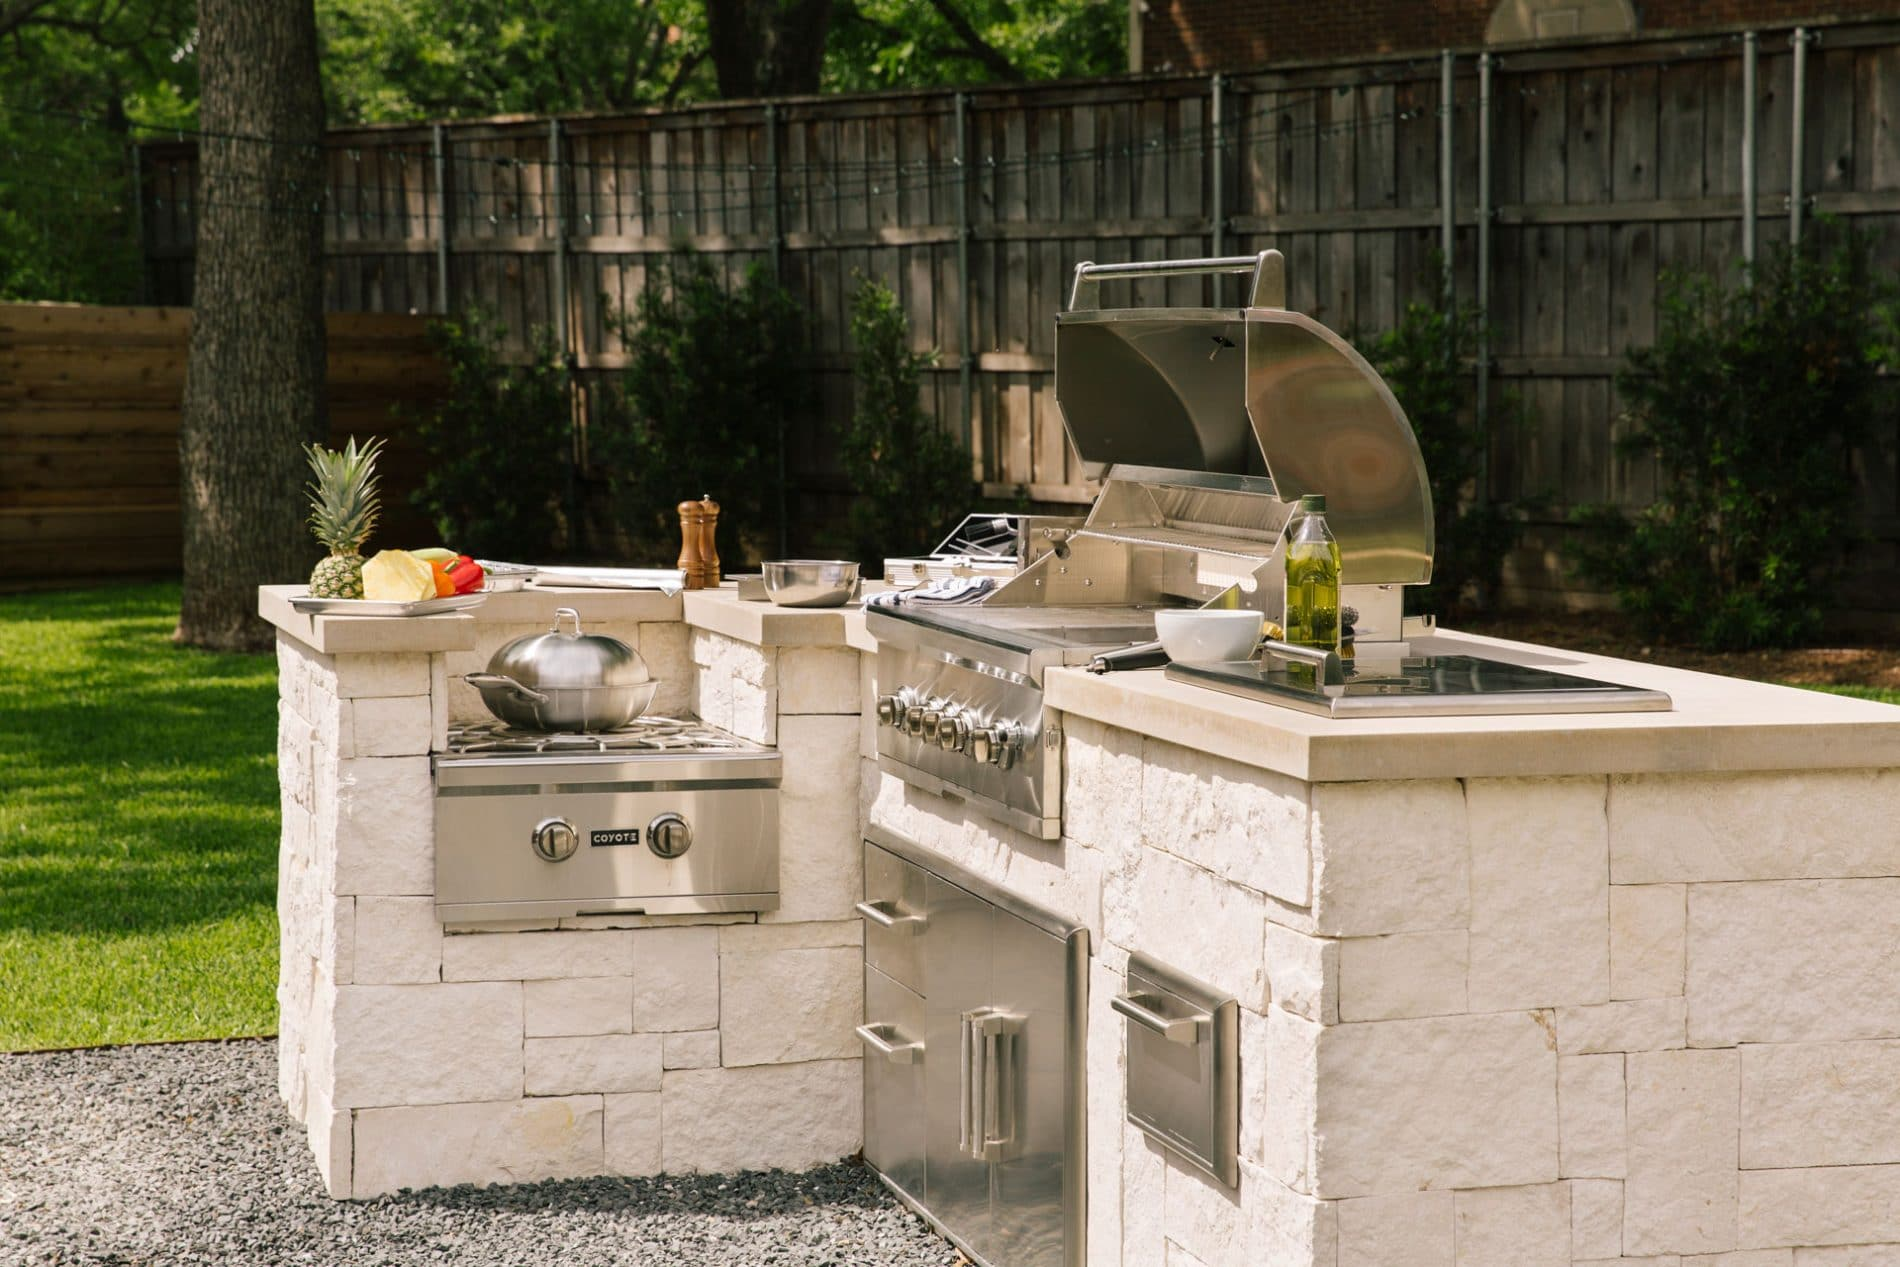 Single Pull Out Trash and Recycle (Model: CSTC) - Coyote ... on Coyote Outdoor Living Inc id=87459